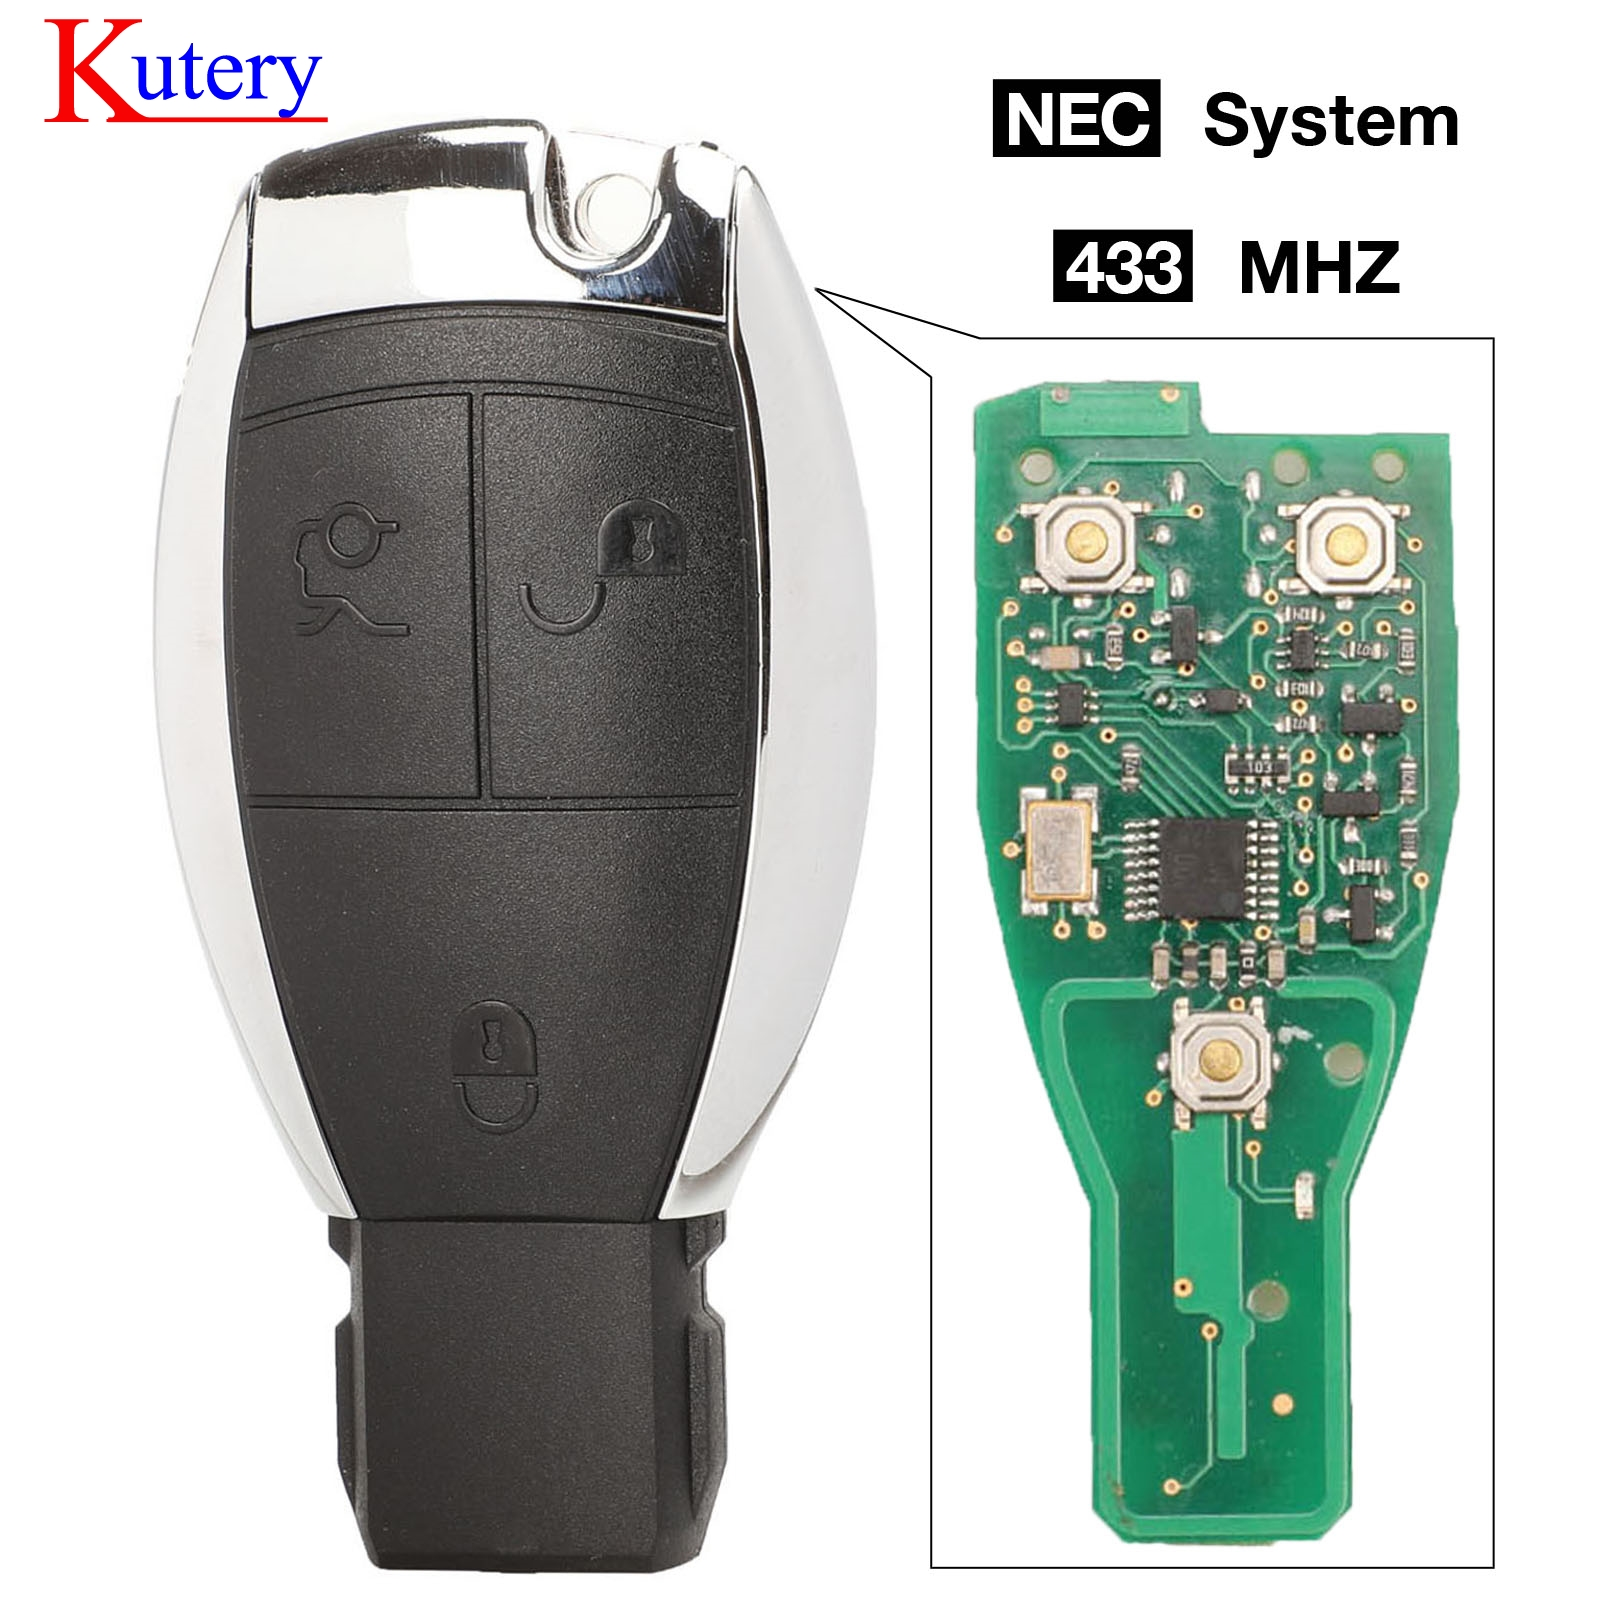 kutery NEC 3 Button Remote Car <font><b>Key</b></font> Fob 433Mhz For <font><b>Mercedes</b></font> For Benz CLS W204 W202 W212 W211 <font><b>W203</b></font> W205 image